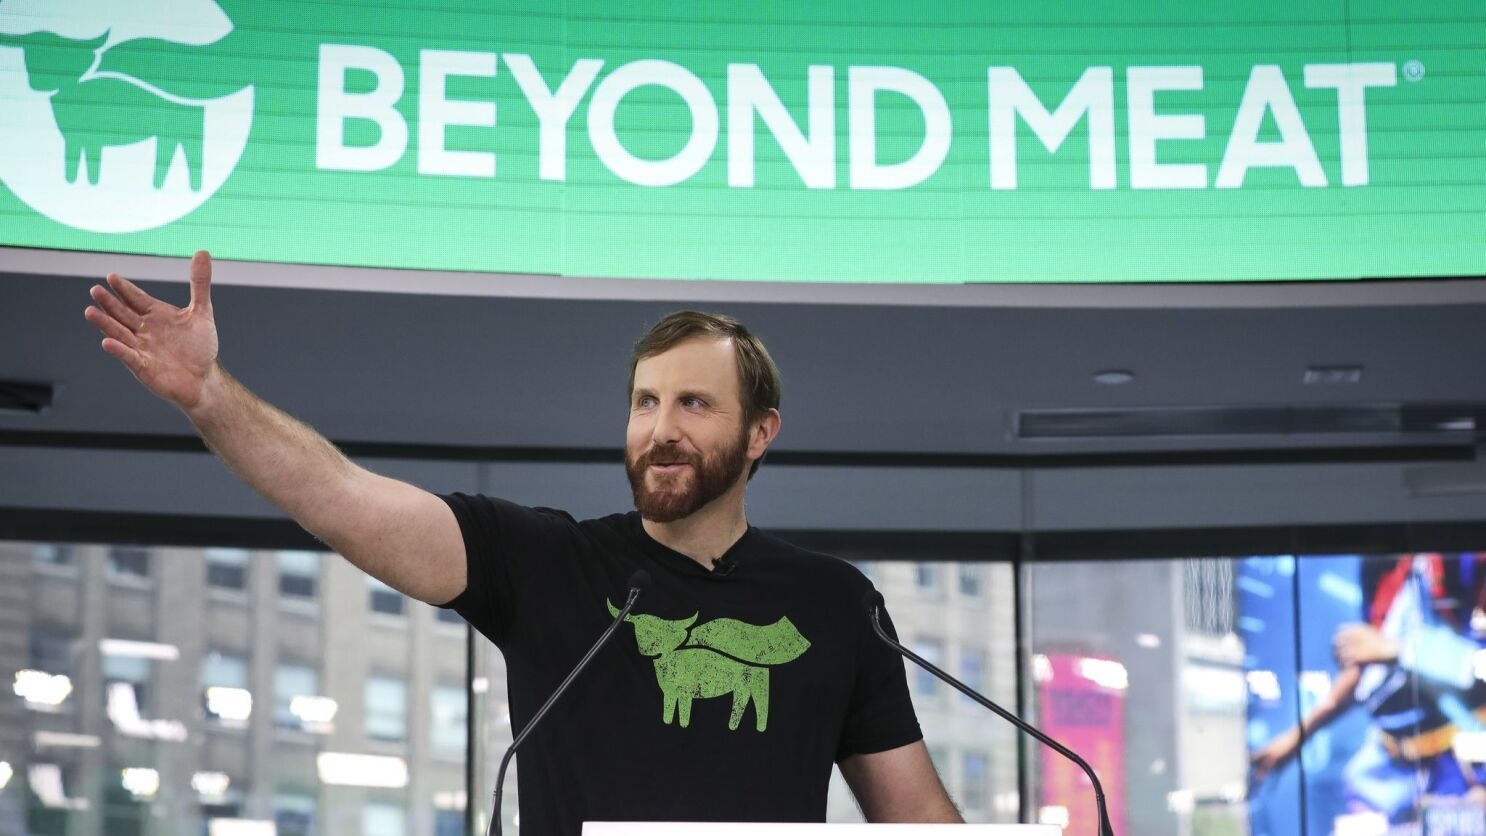 Beyond Meat stock is overpriced beyond reason, says analyst who had Facebook IPO pegged